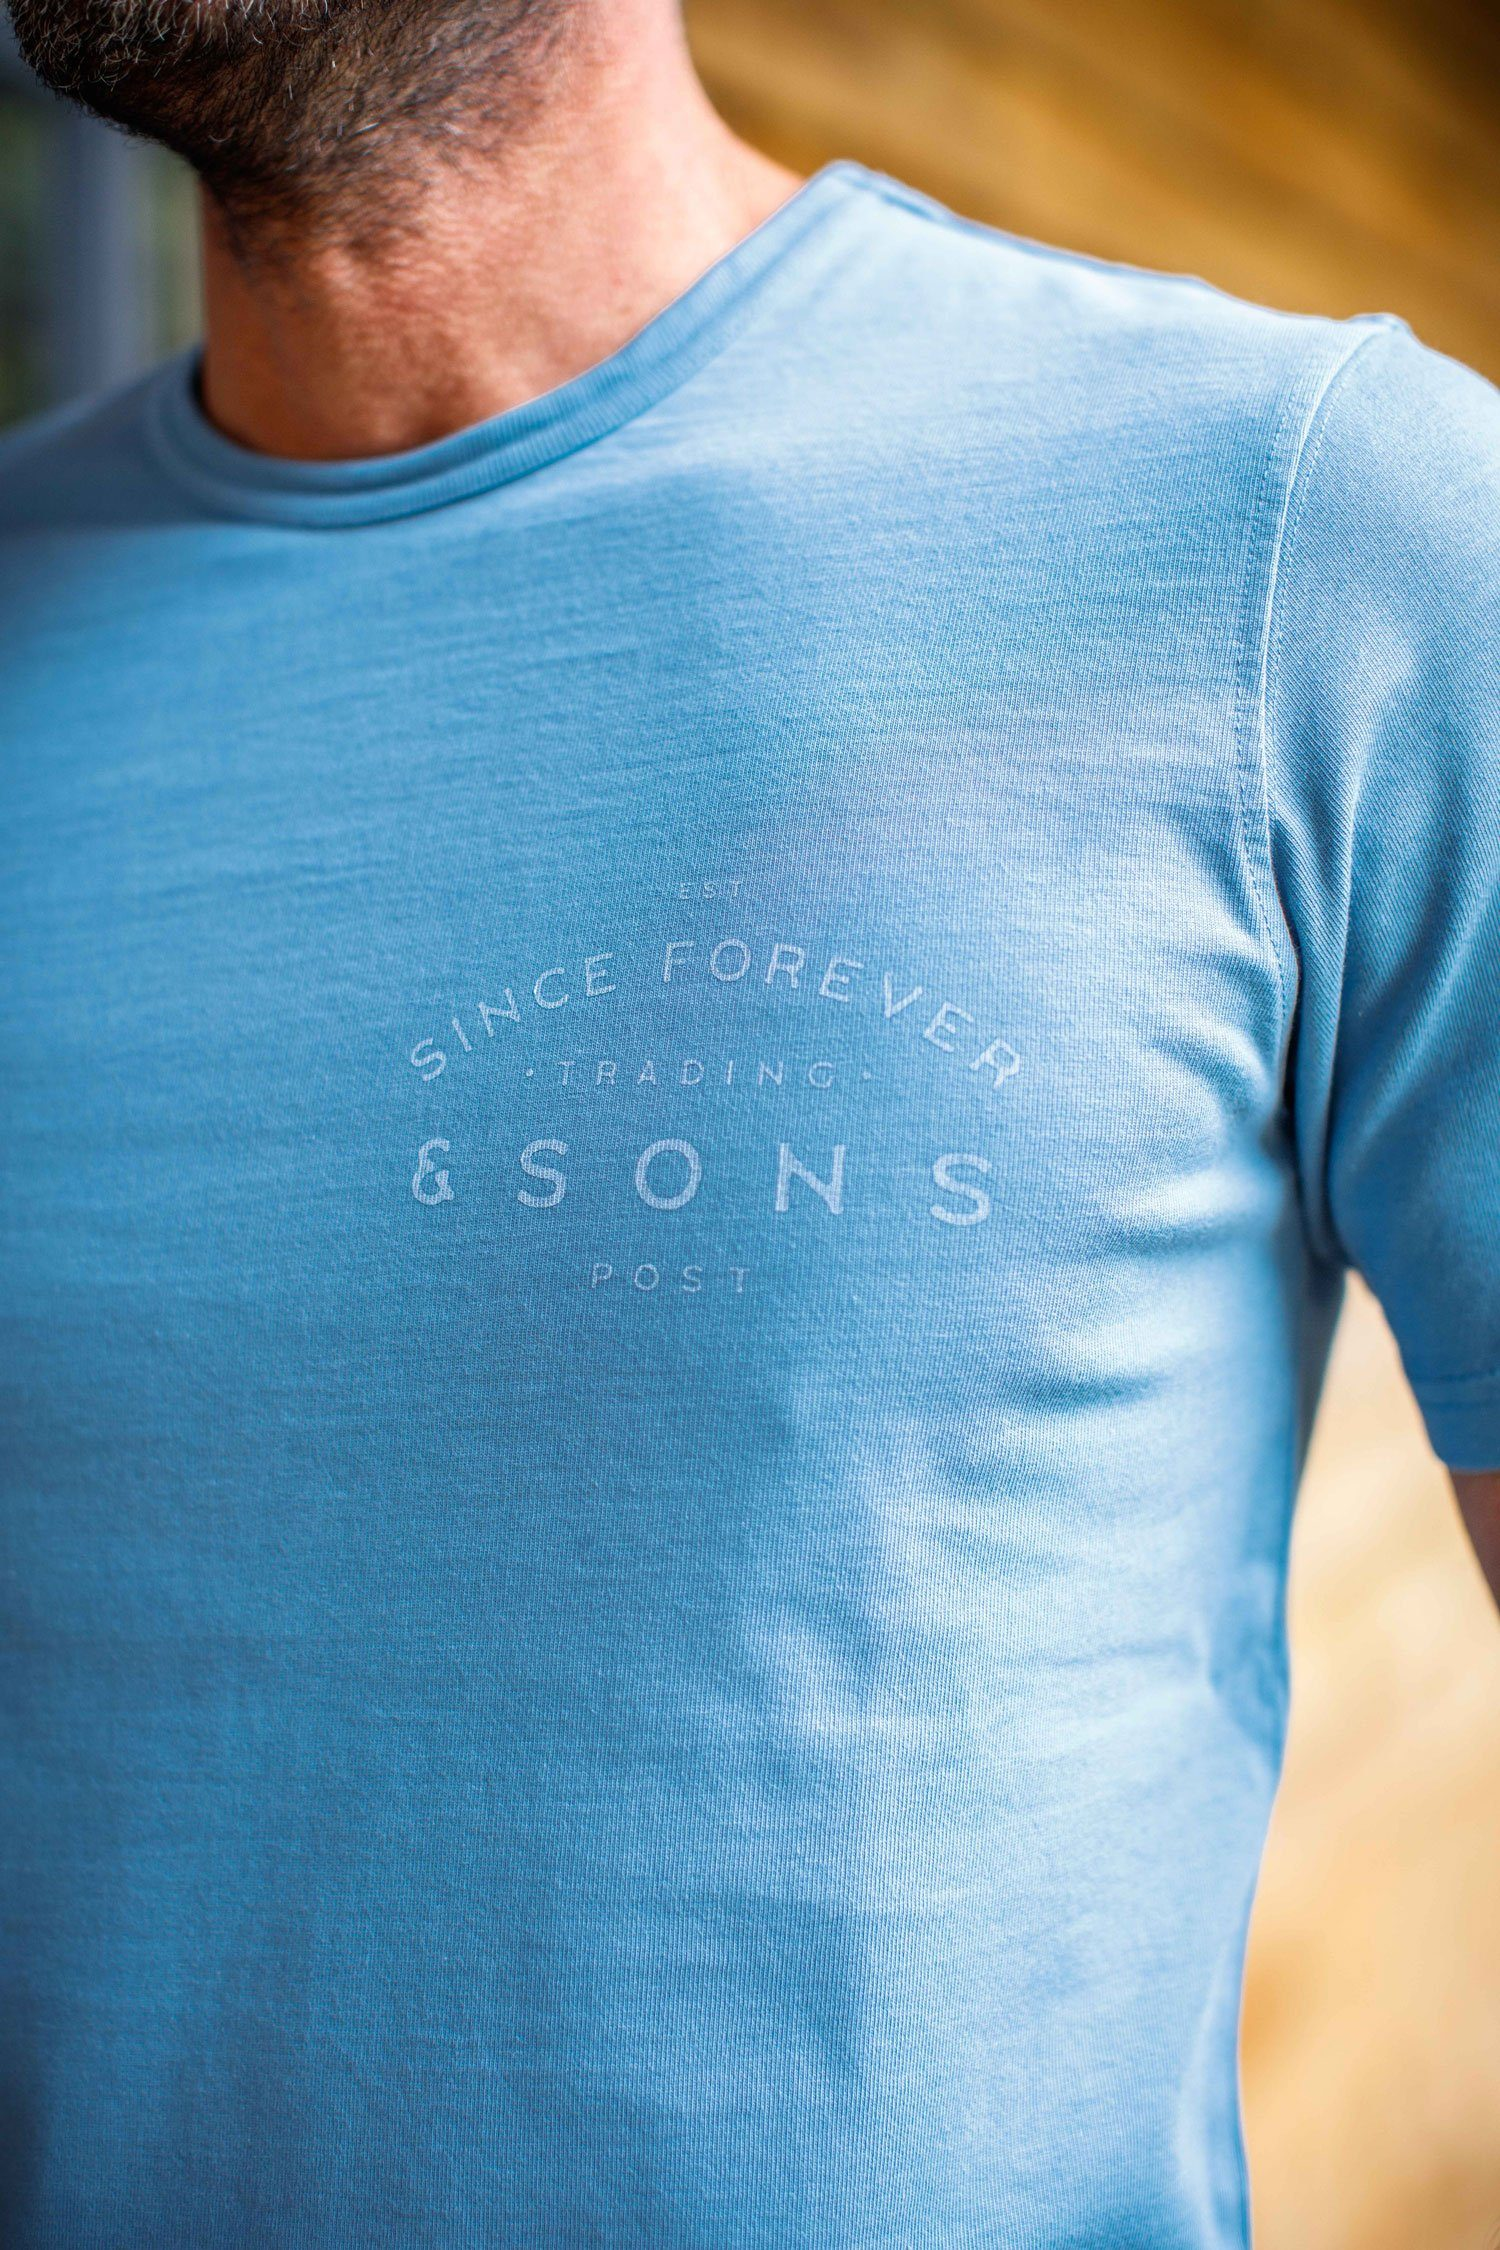 &SONS Boxer Trading Post T-Shirt Blue